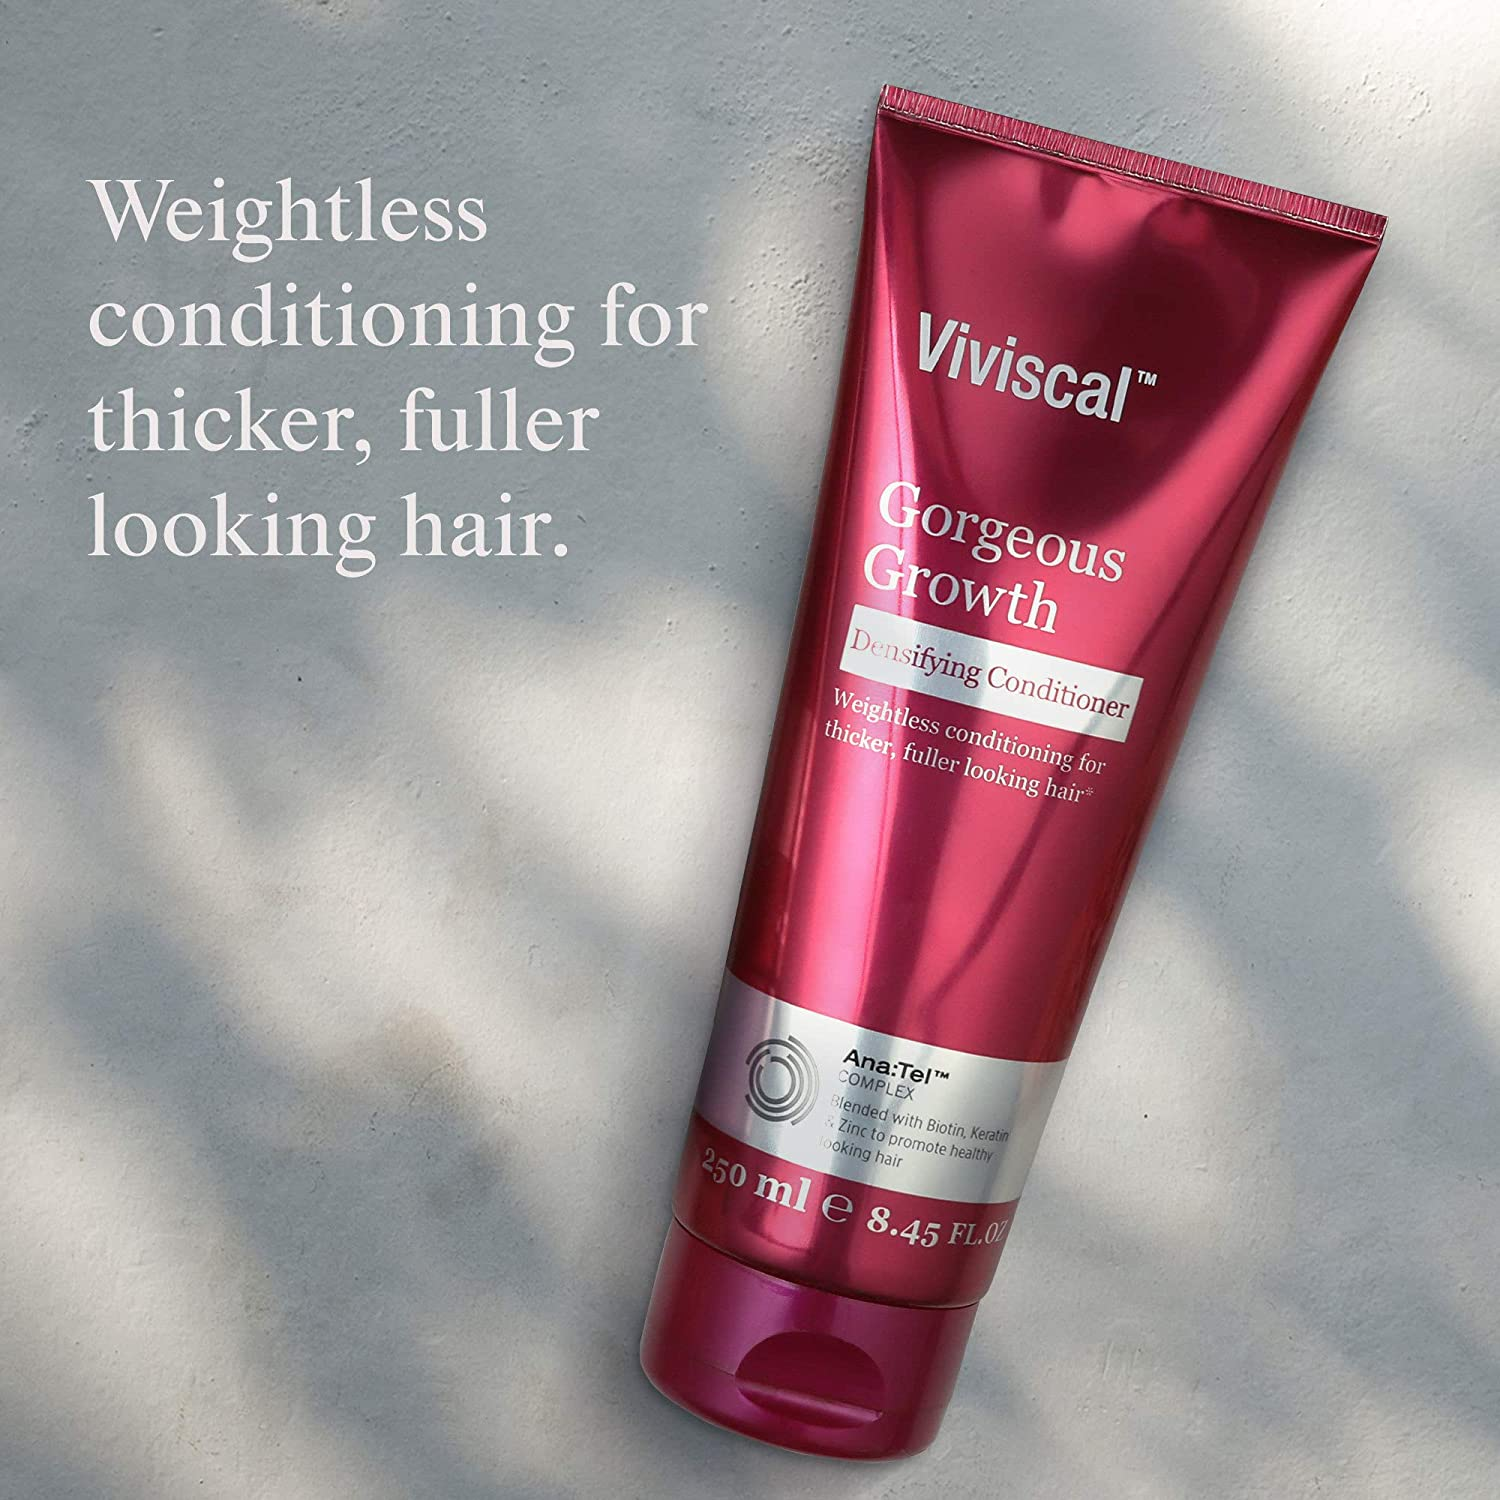 Weightless conditioning for thicker, fuller-looking hair